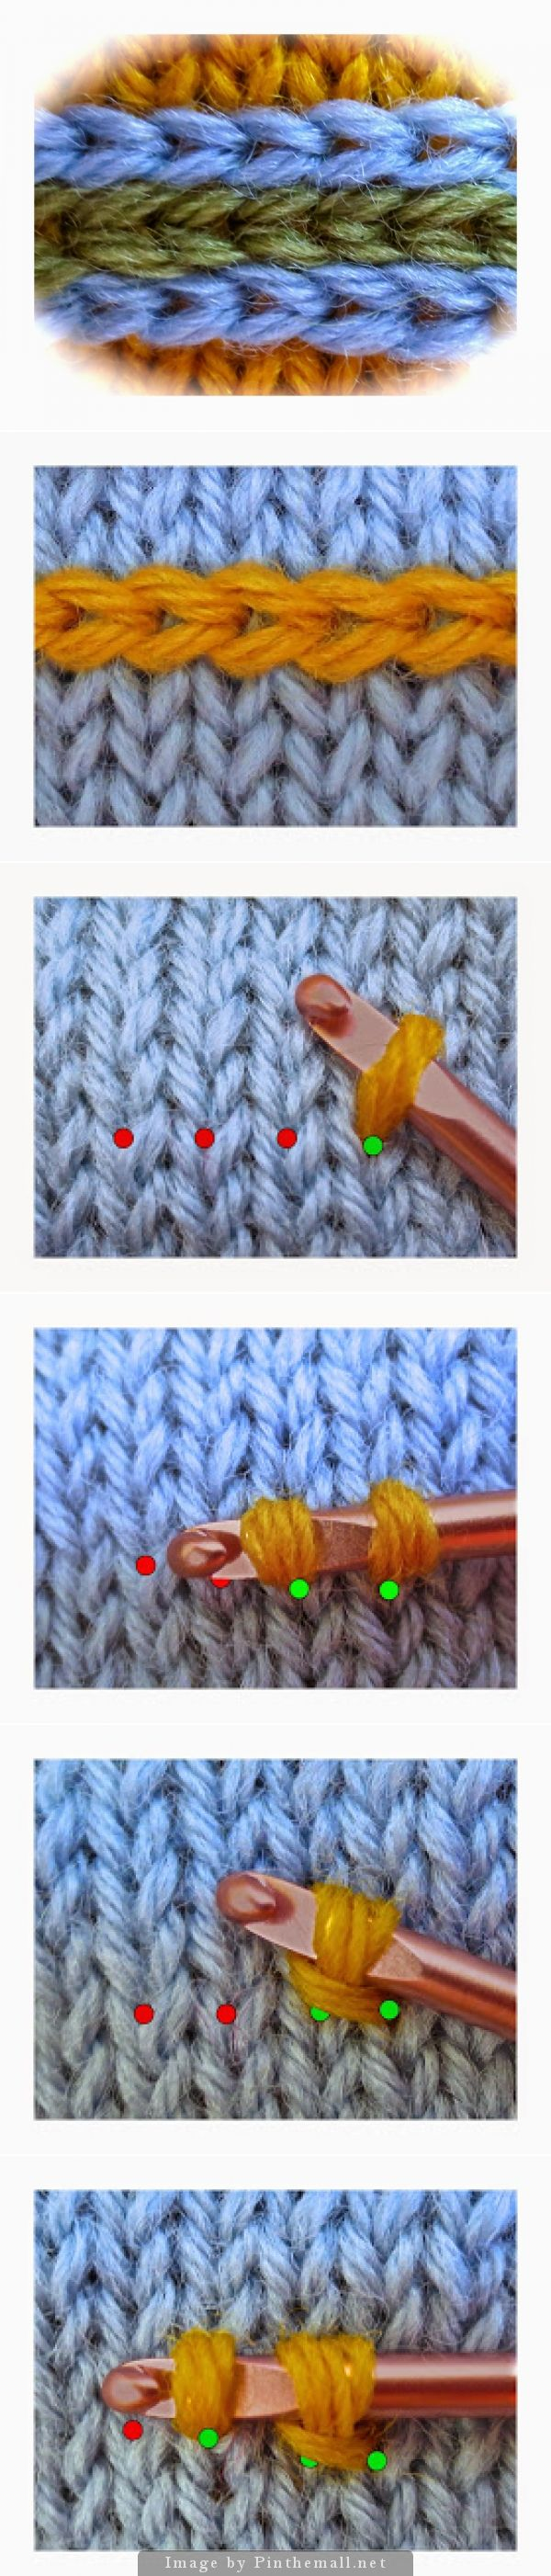 This decoration for knitted projects looks like #Latvian_Knitting, but is really just crocheted slip stitches made into a knitted foundation. It's really easy to do and is a very effective way to add design interest to your knitting